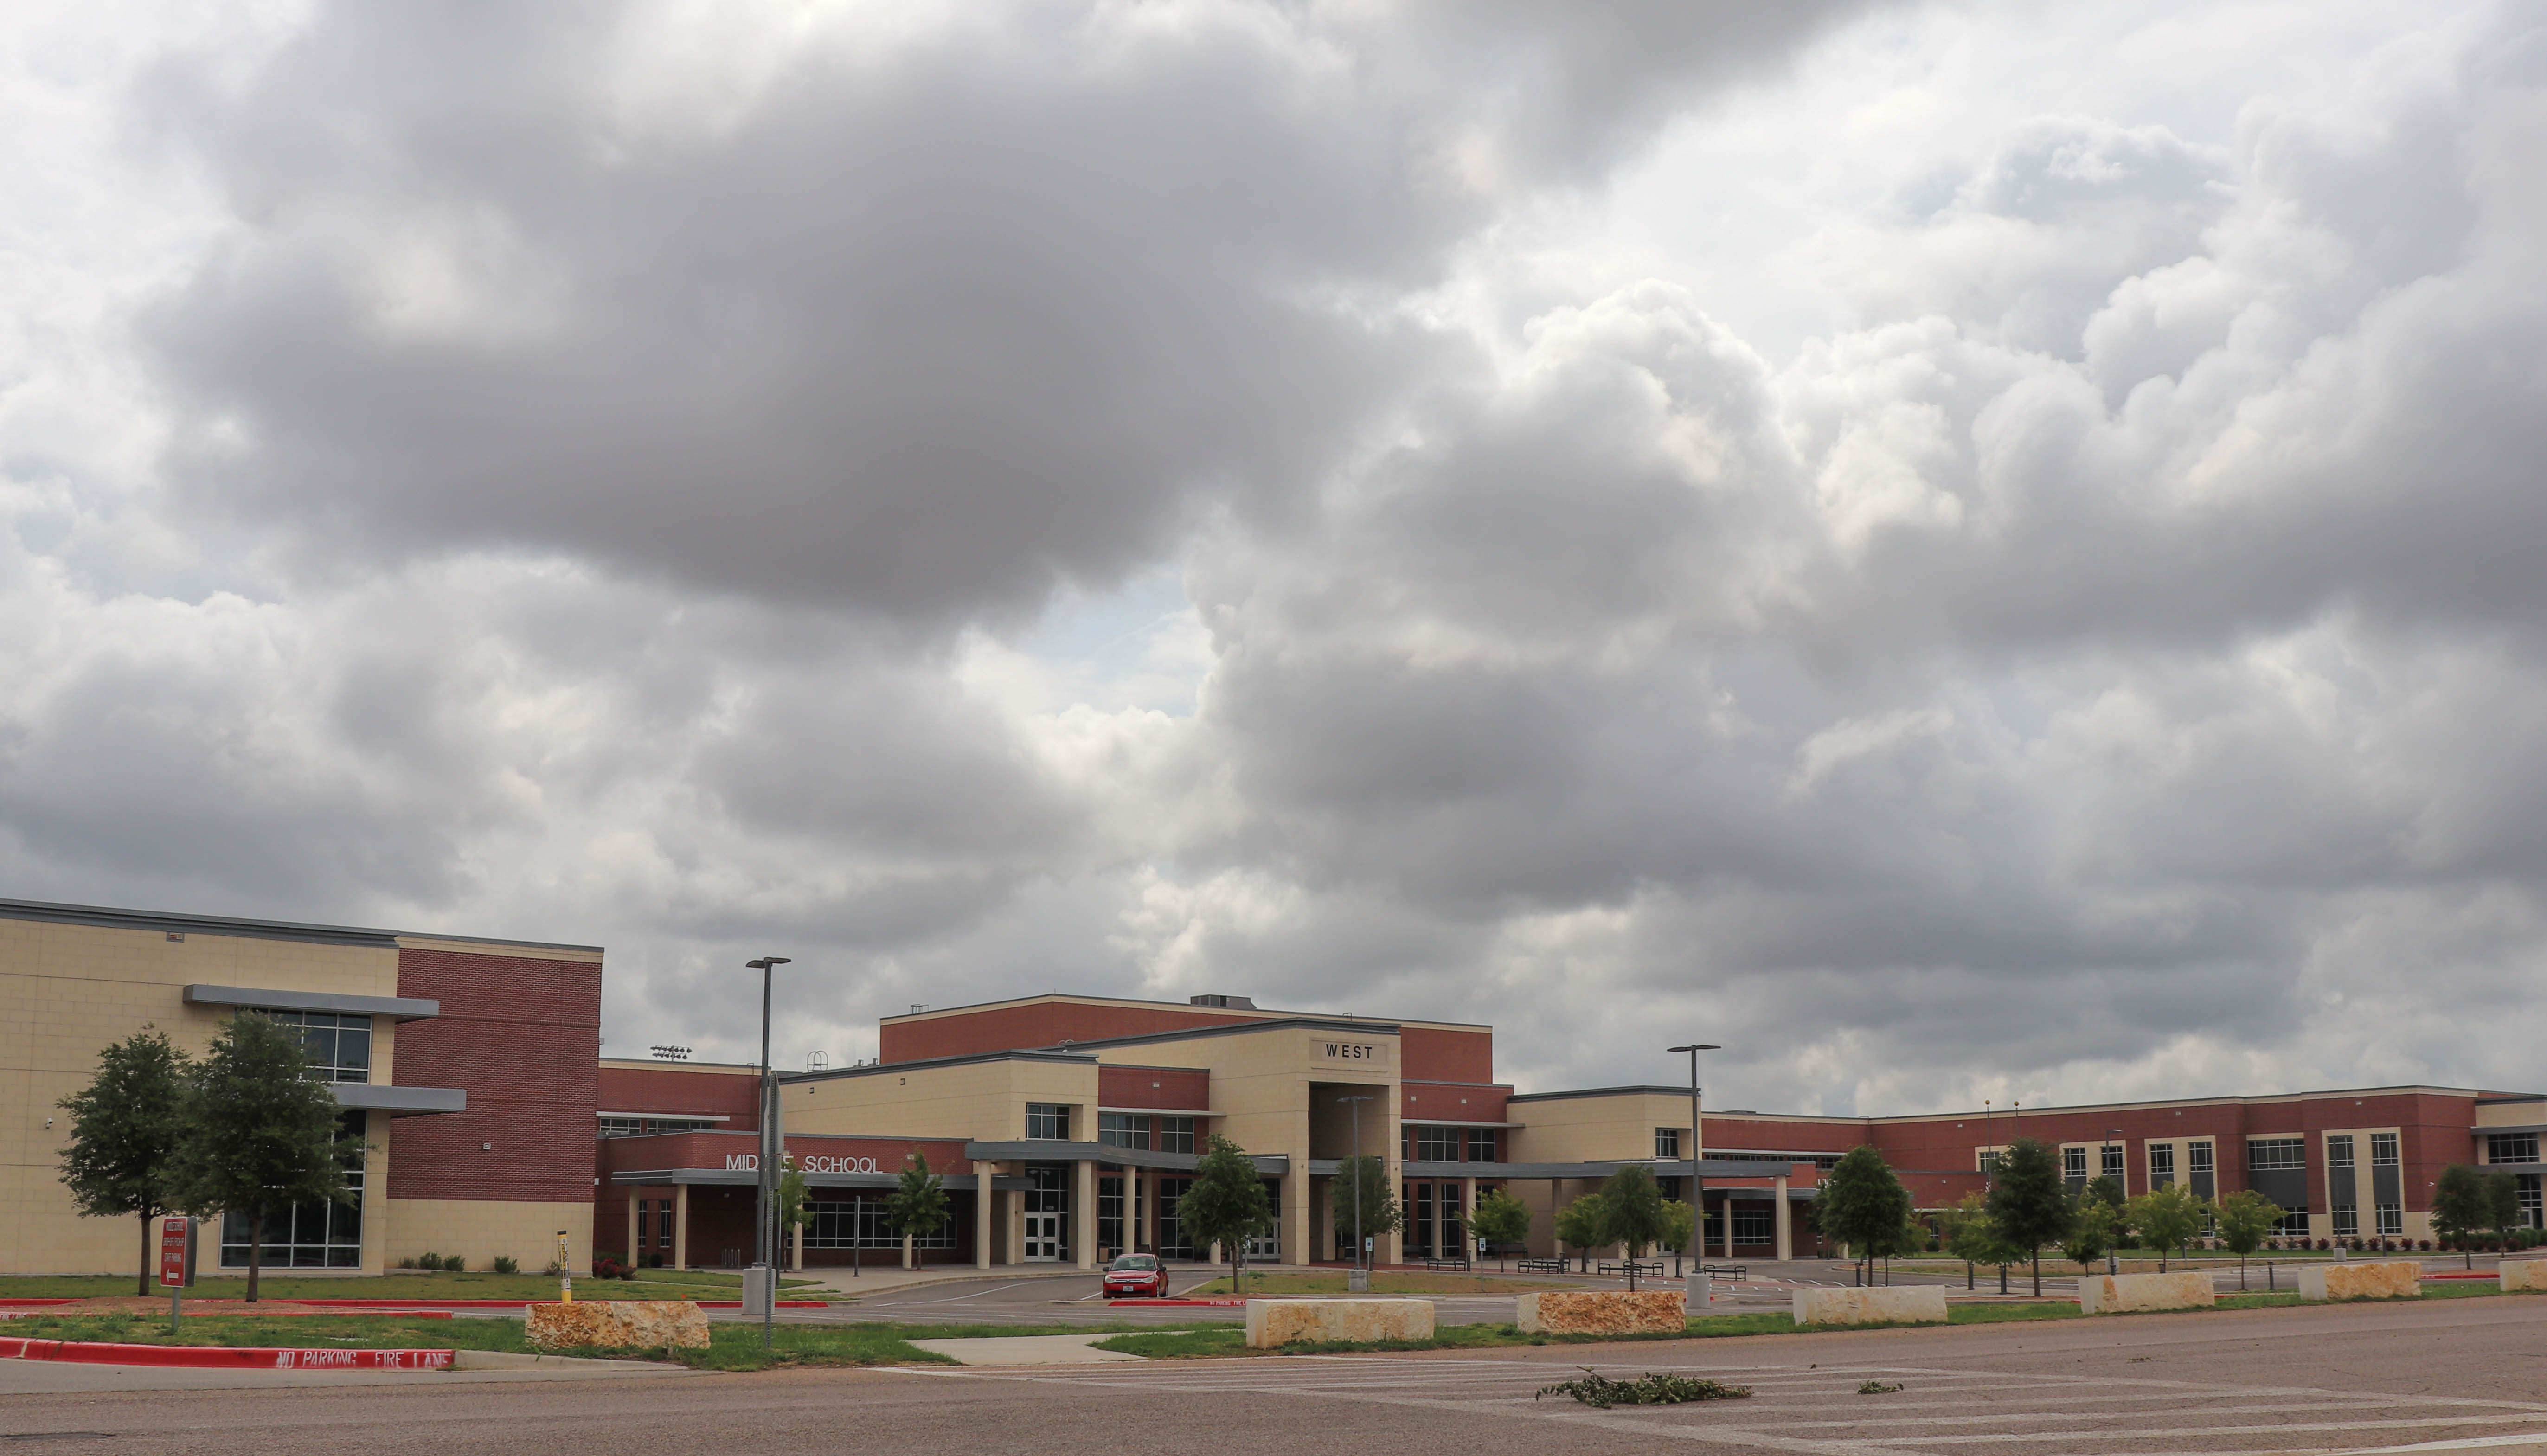 West,Texas middle and high school